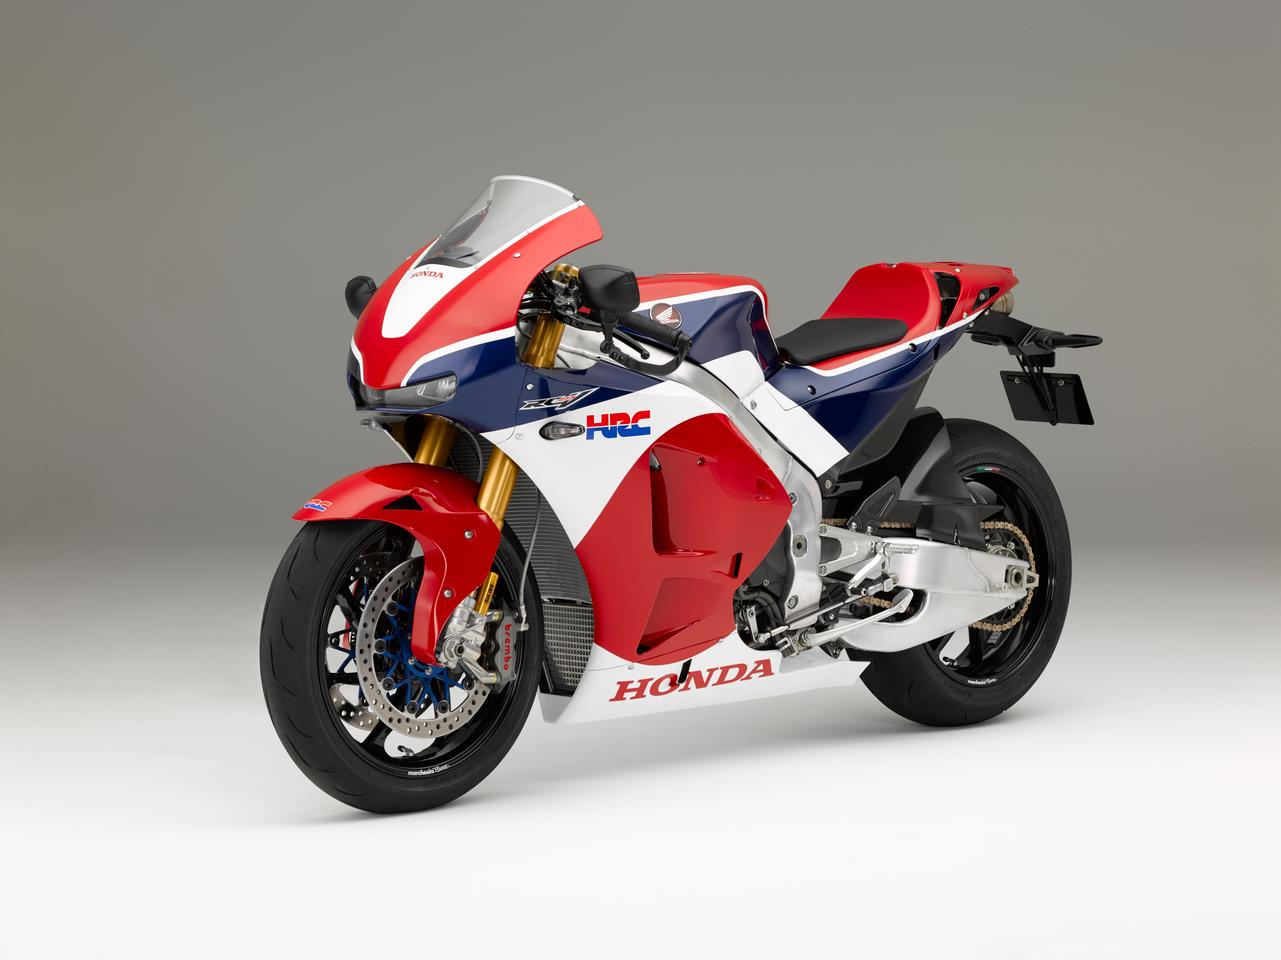 RC213V-S – Is this the most collectible Honda production street bike ever?